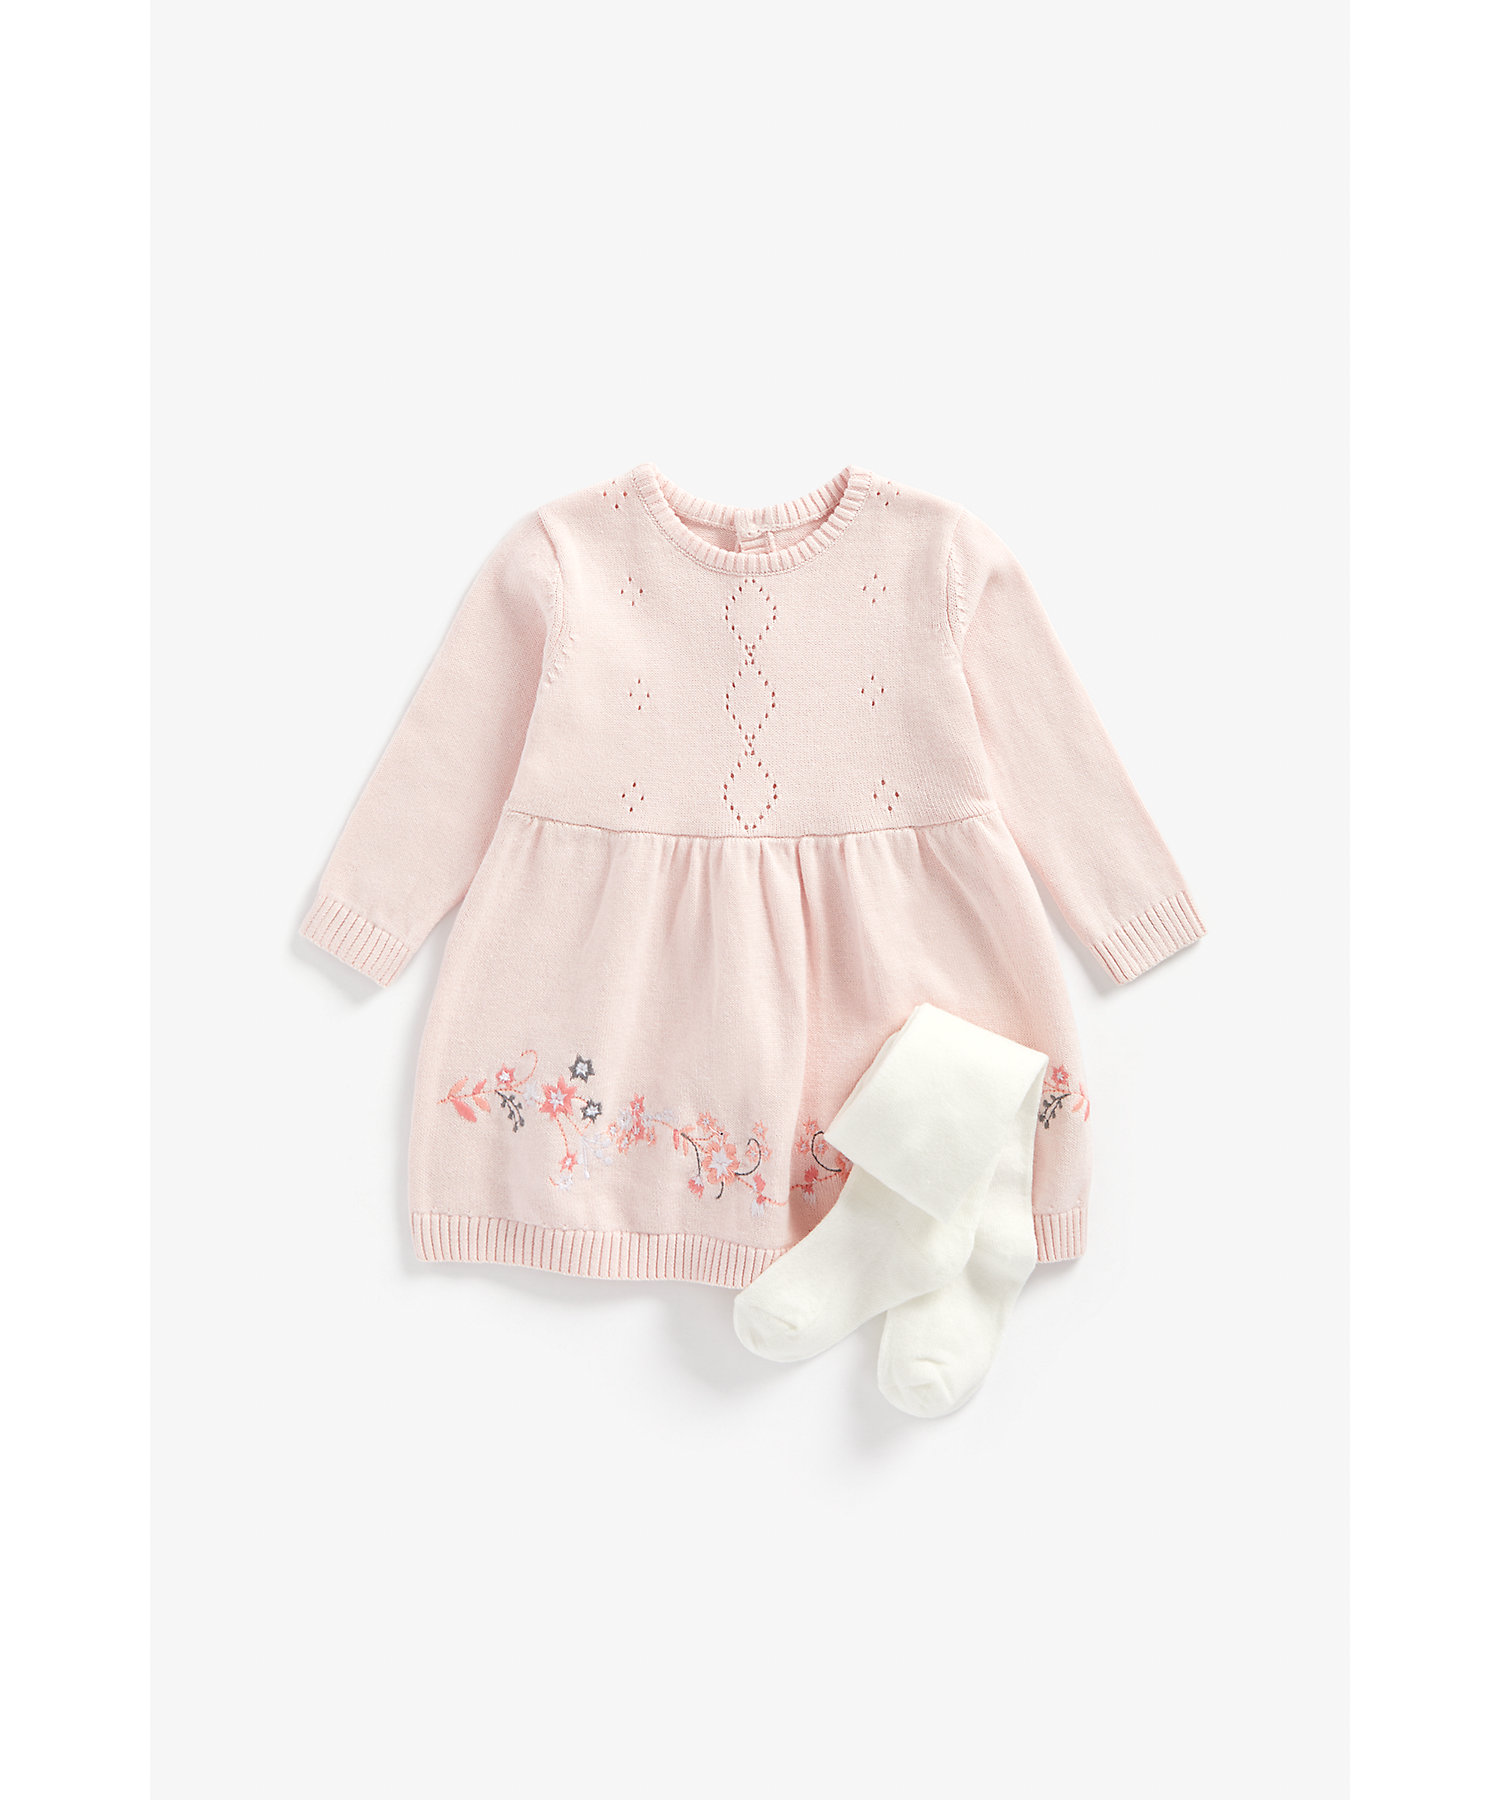 Mothercare | Girls Full Sleeves Dress And Tights Sets Floral Embroidery - Pink